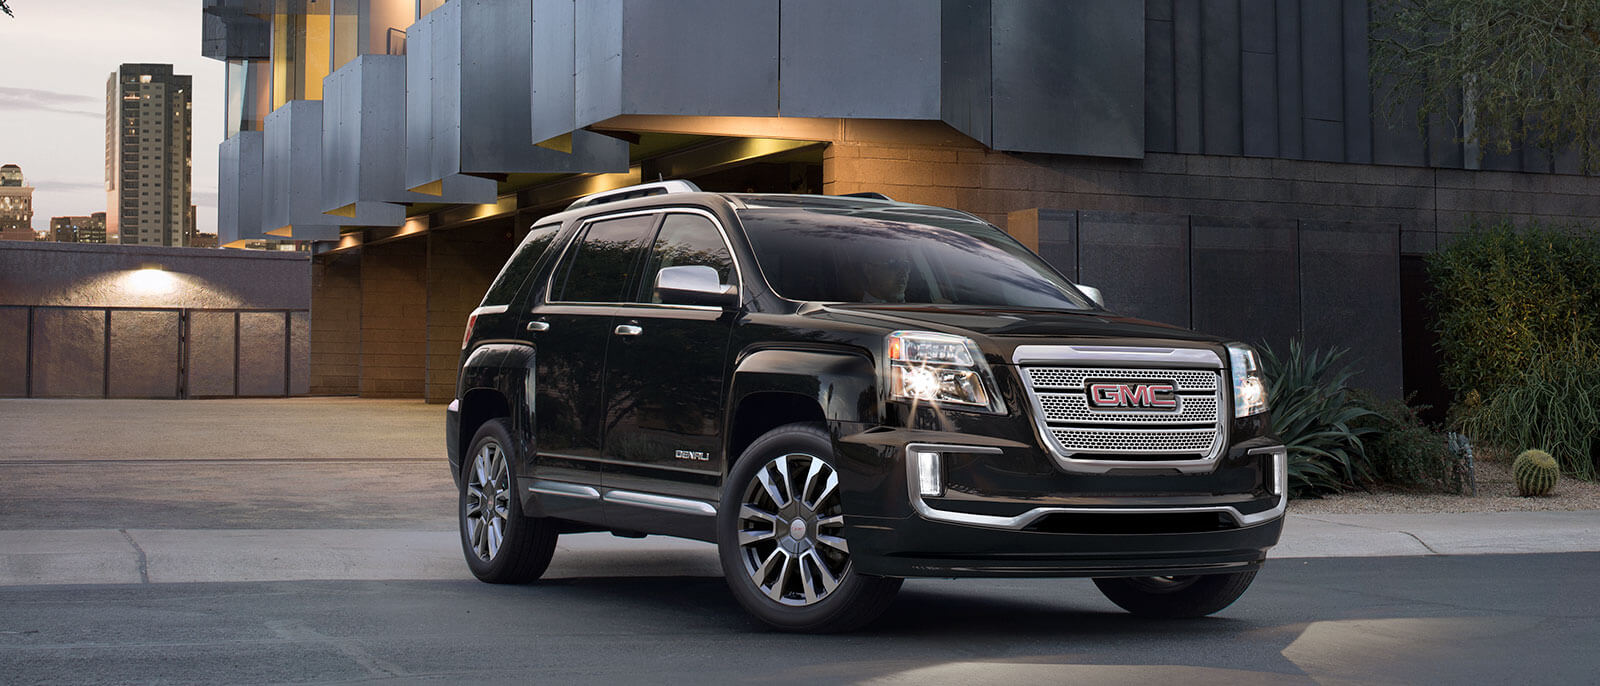 Beauty And Power Collide In The New 2017 Gmc Terrain Denali